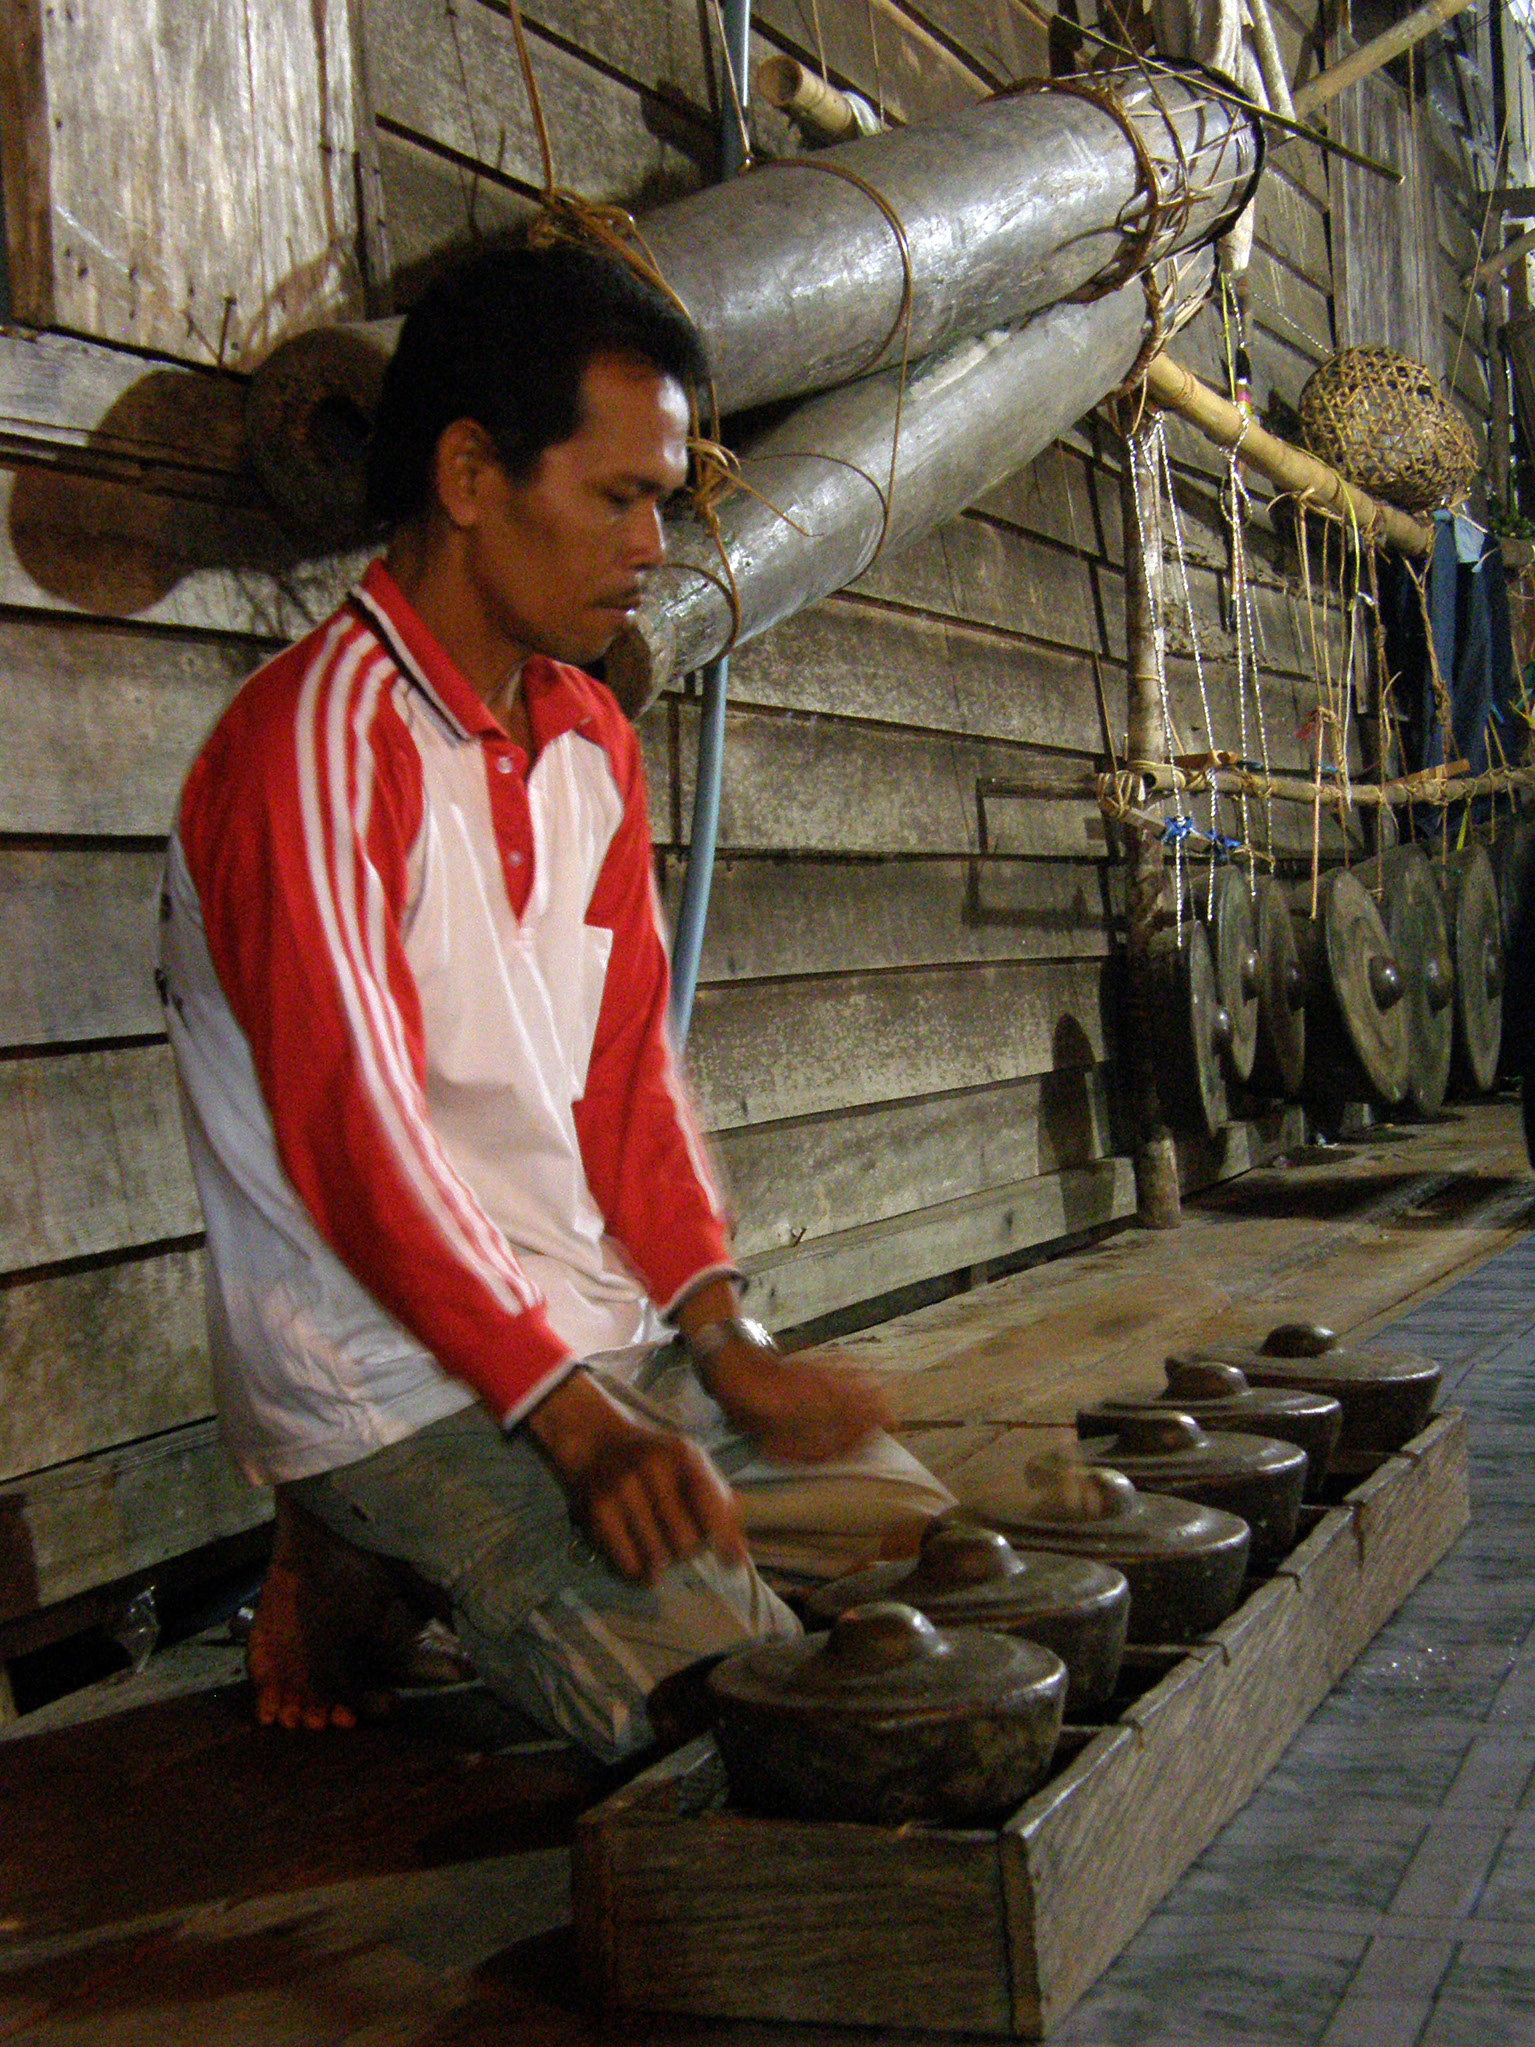 FIGURE-4---A-player-of-the-kentangan-kettles.-In-the-background-gimbar-drums-and-gningt-gongs-can-be-seen-photo-Della-Ratta